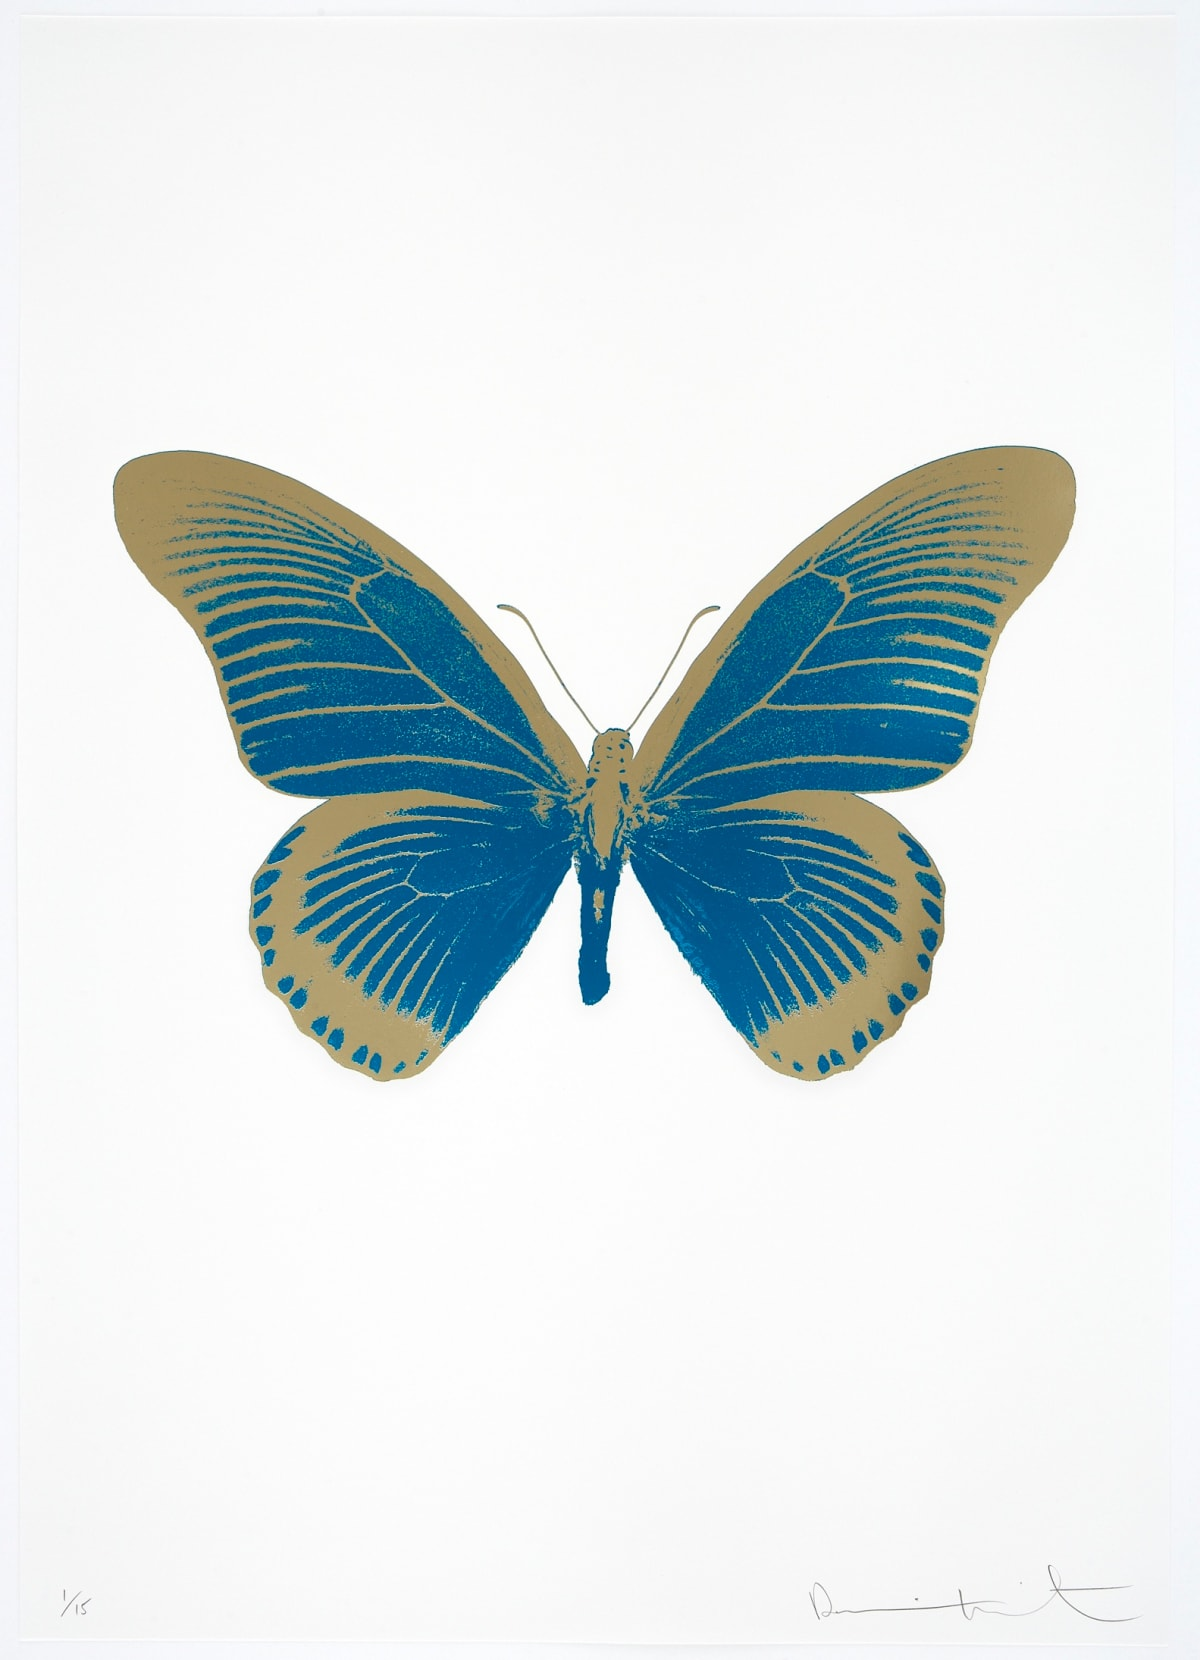 Damien Hirst The Souls IV - Turquoise/Cool Gold, 2010 2 colour foil block on 300gsm Arches 88 archival paper. Signed and numbered. Published by Paul Stolper and Other Criteria 72 x 51cm OC8014 / 1418-37 Edition of 15